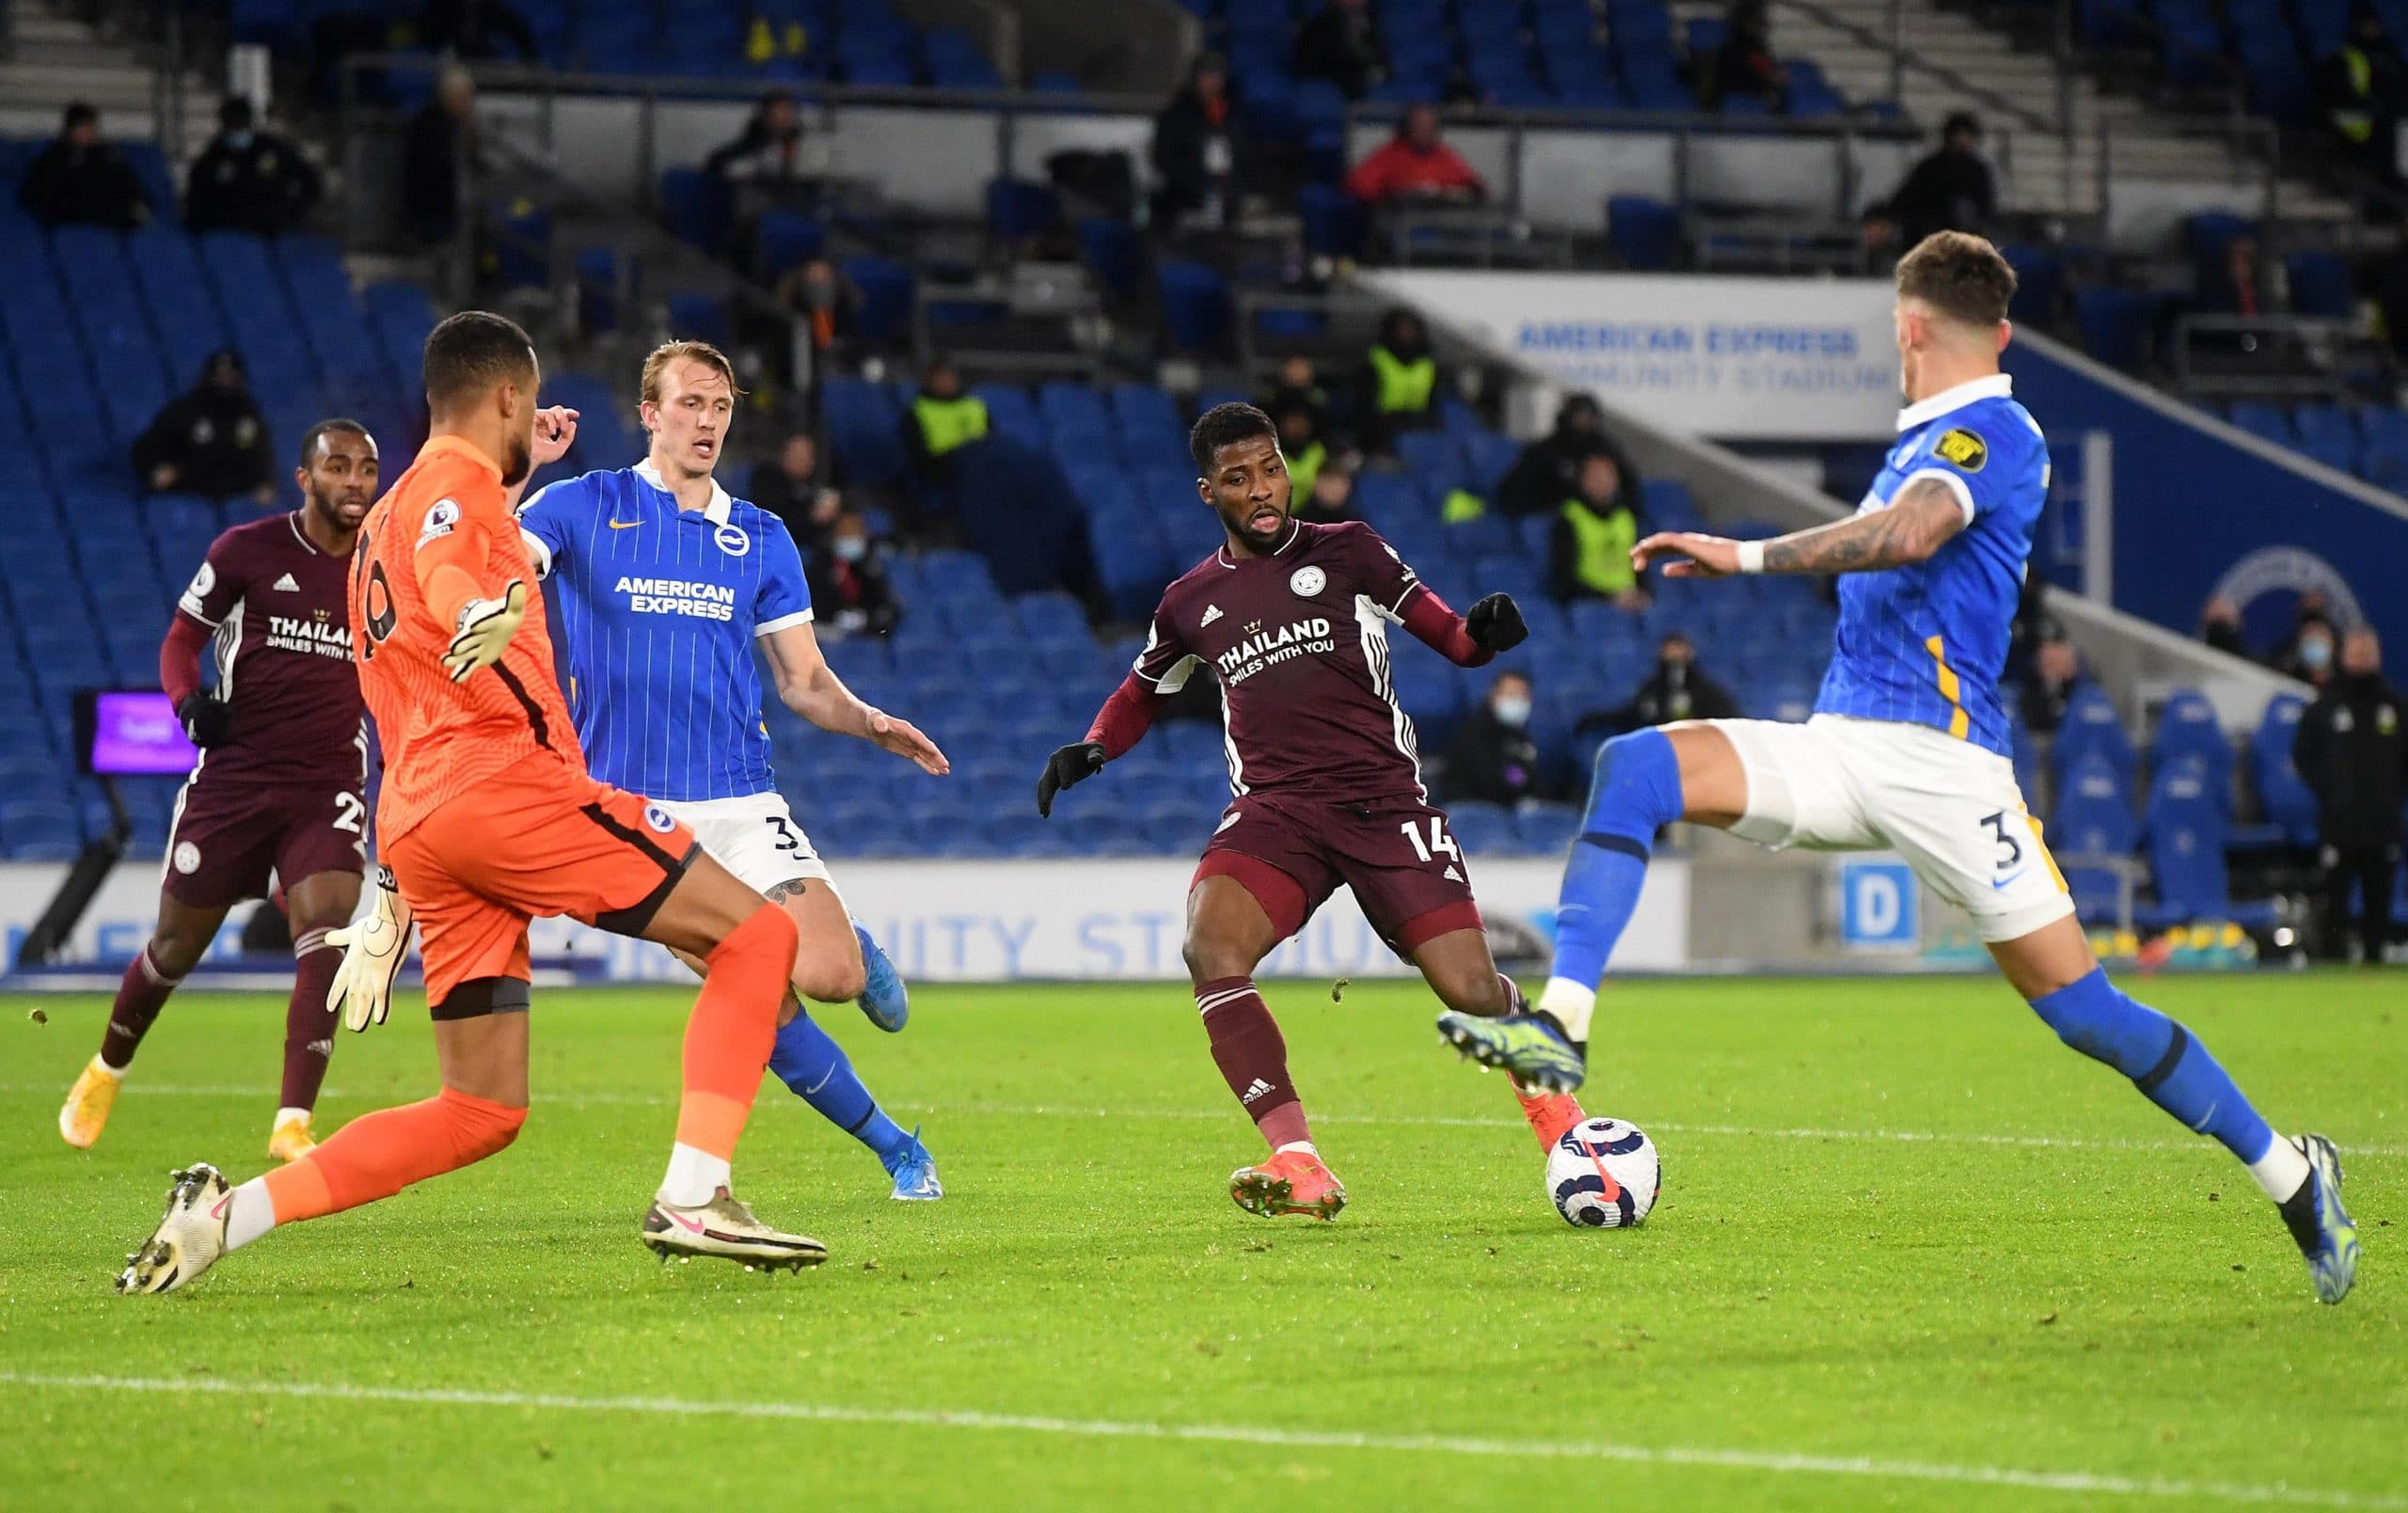 Premier League: Iheanacho Scores Again As Leicester Strengthen CL Hopes With Comeback Win